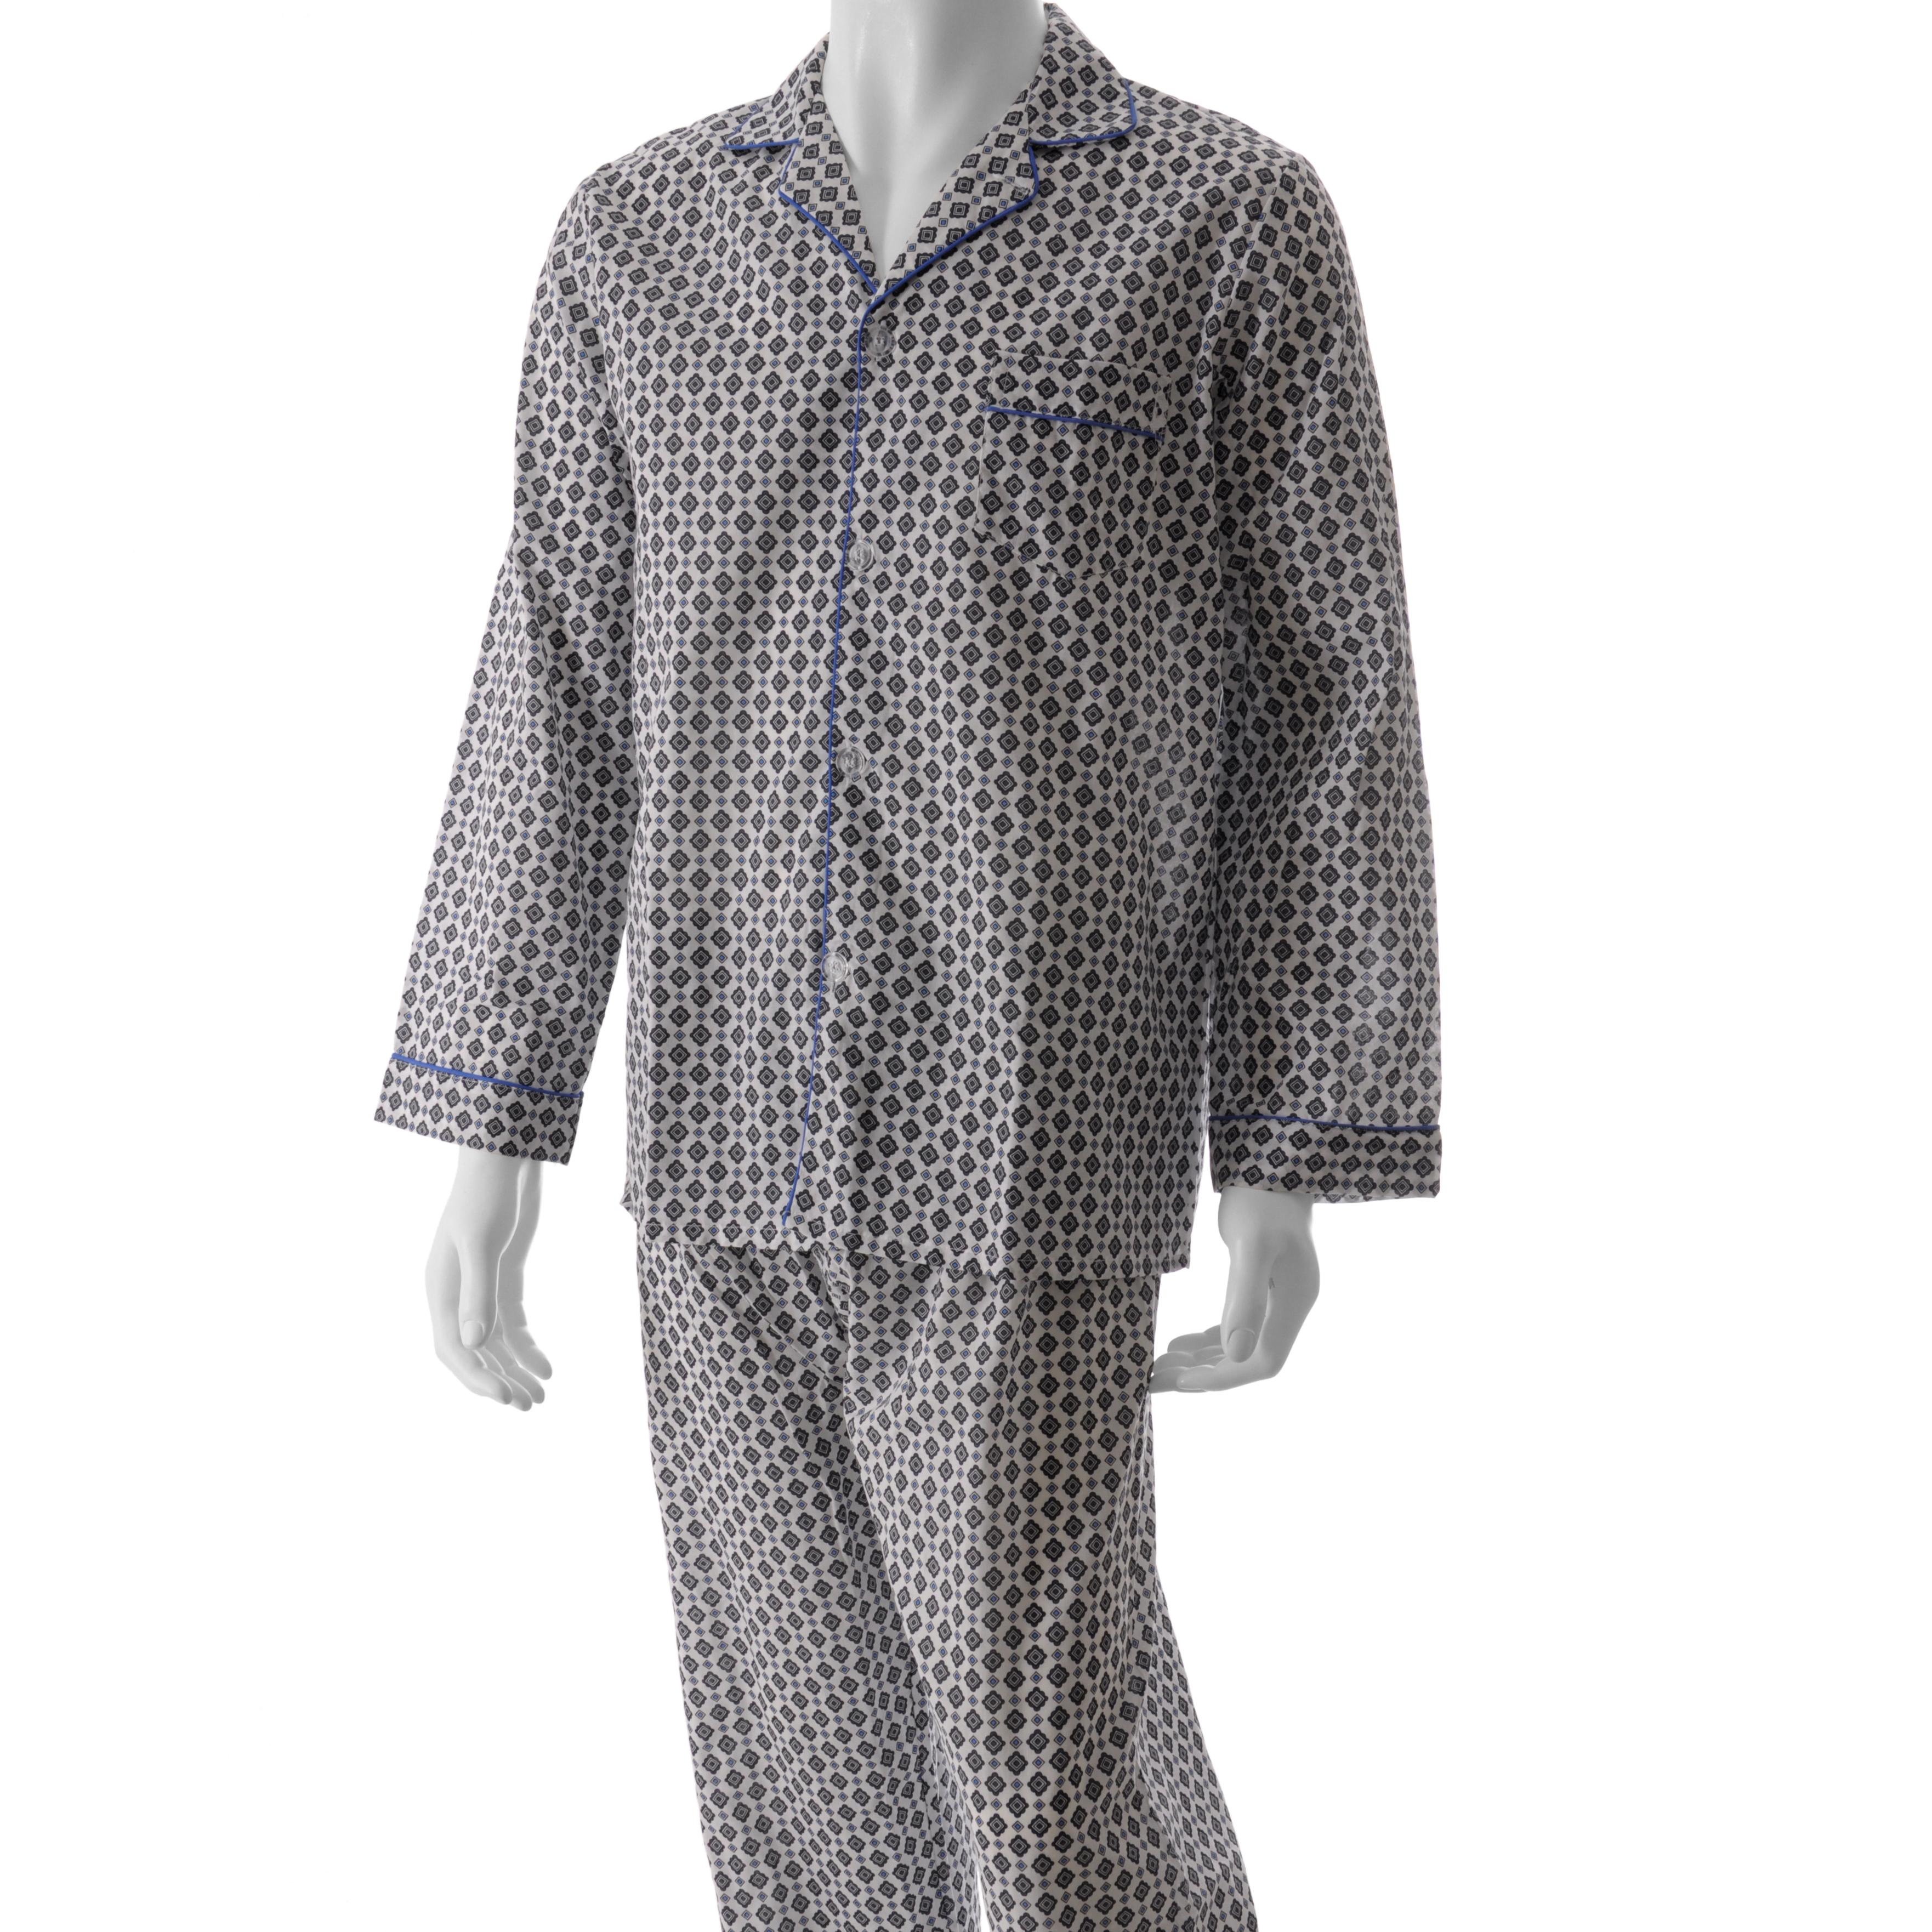 5010787e2706f Shop Ten West by Daxx Men's Blue/ White Pajama Set - Free Shipping On Orders  Over $45 - Overstock - 4825610